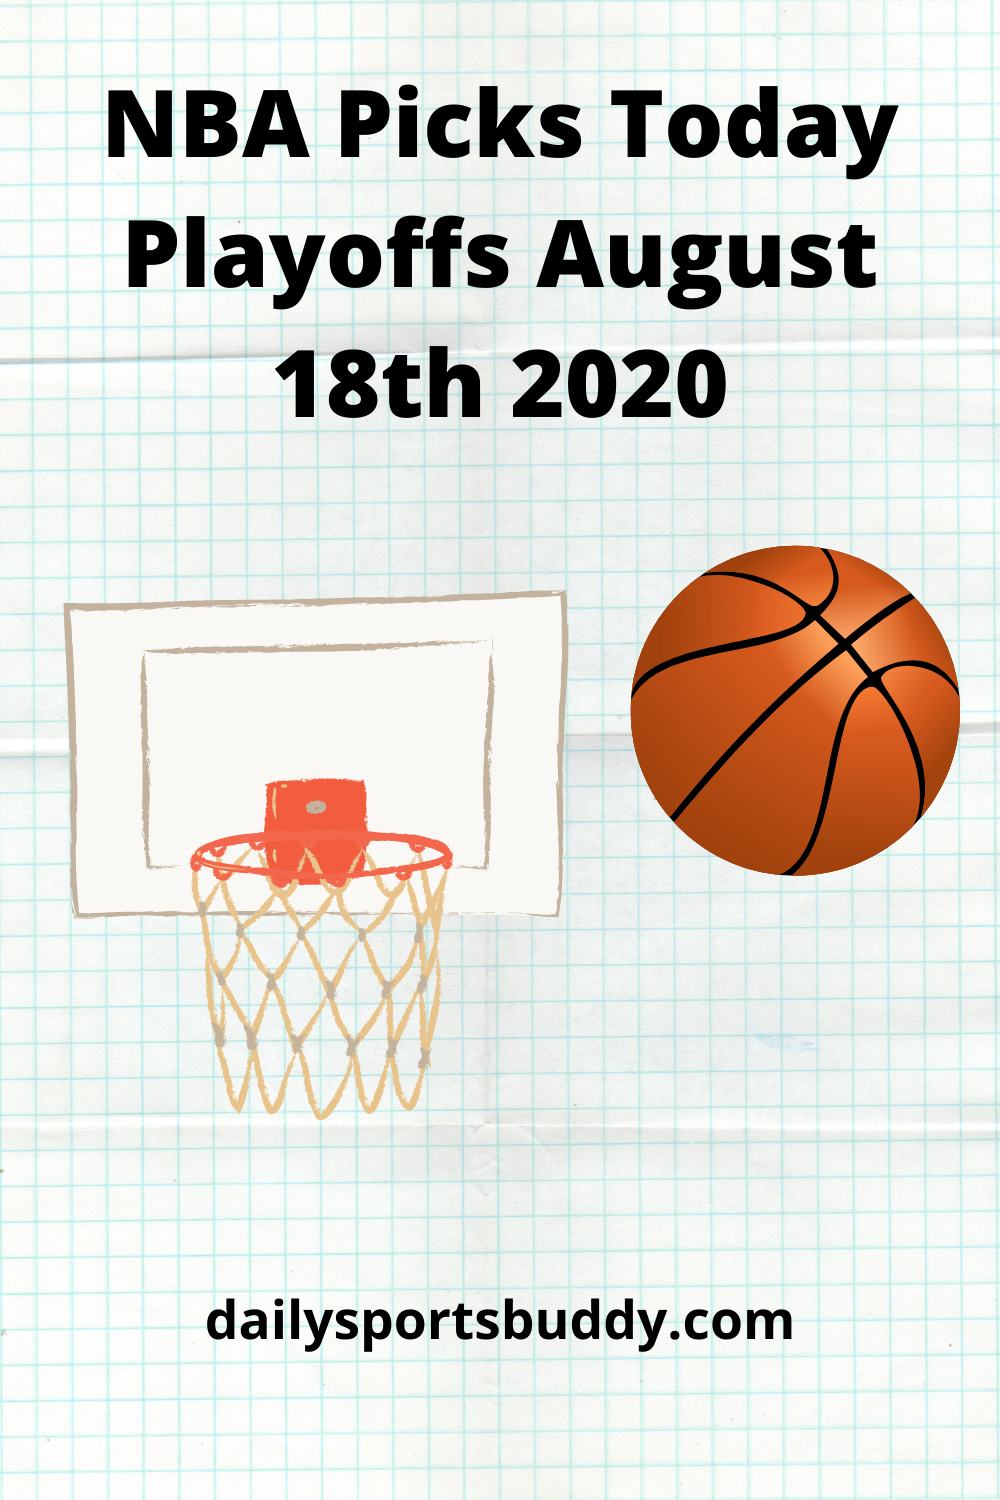 Nba Picks Today Playoffs Tuesday August 18th 2020 In 2020 Nba Preview Nba Picks